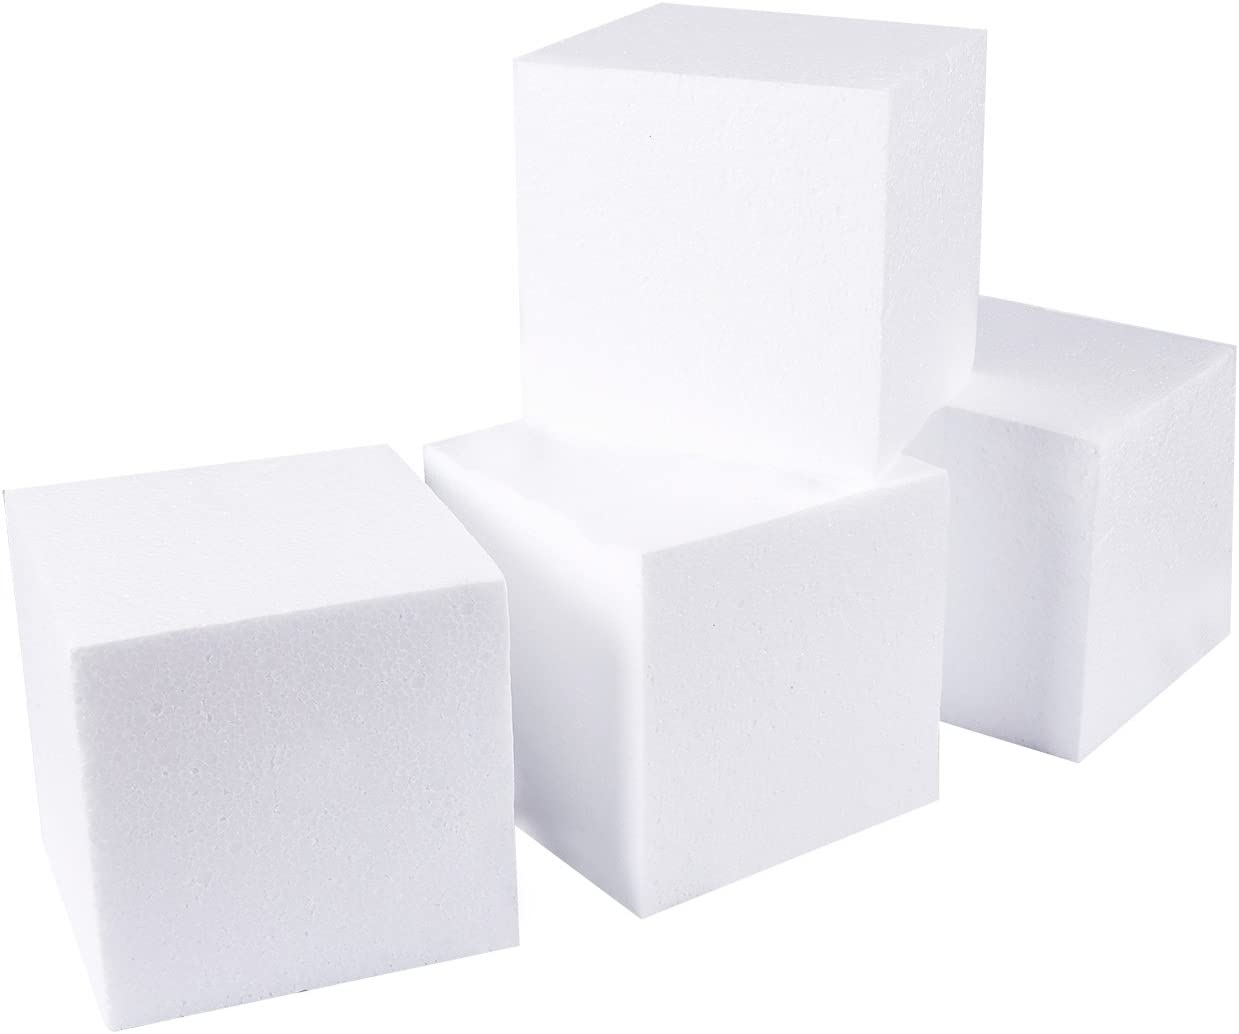 Foam Cubes, Arts and Crafts Supplies (6 x 6 x 6 in, 4-Pack)